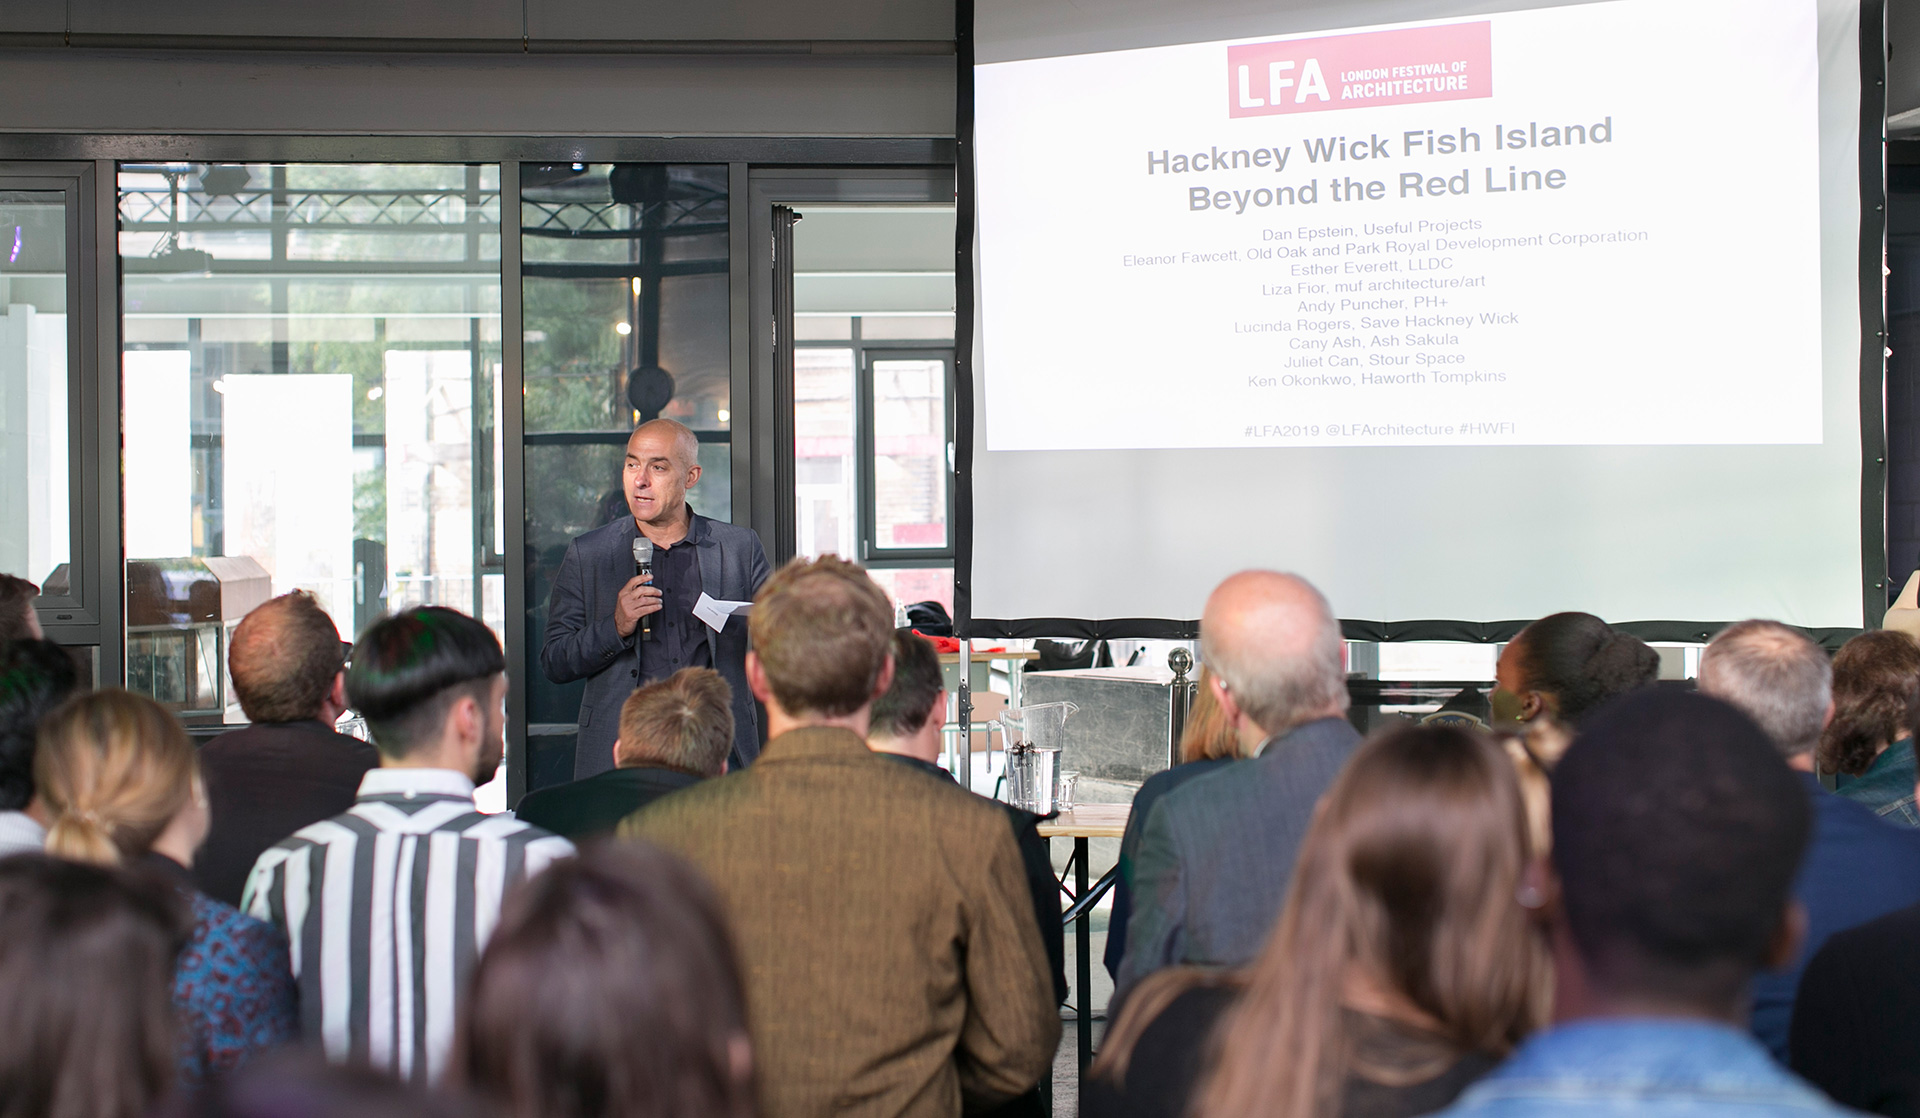 Sustainability consultant Dan Epstein chaired the discussion| Hackney Wick and Fish Island: Beyond the Red Line| London| STIR